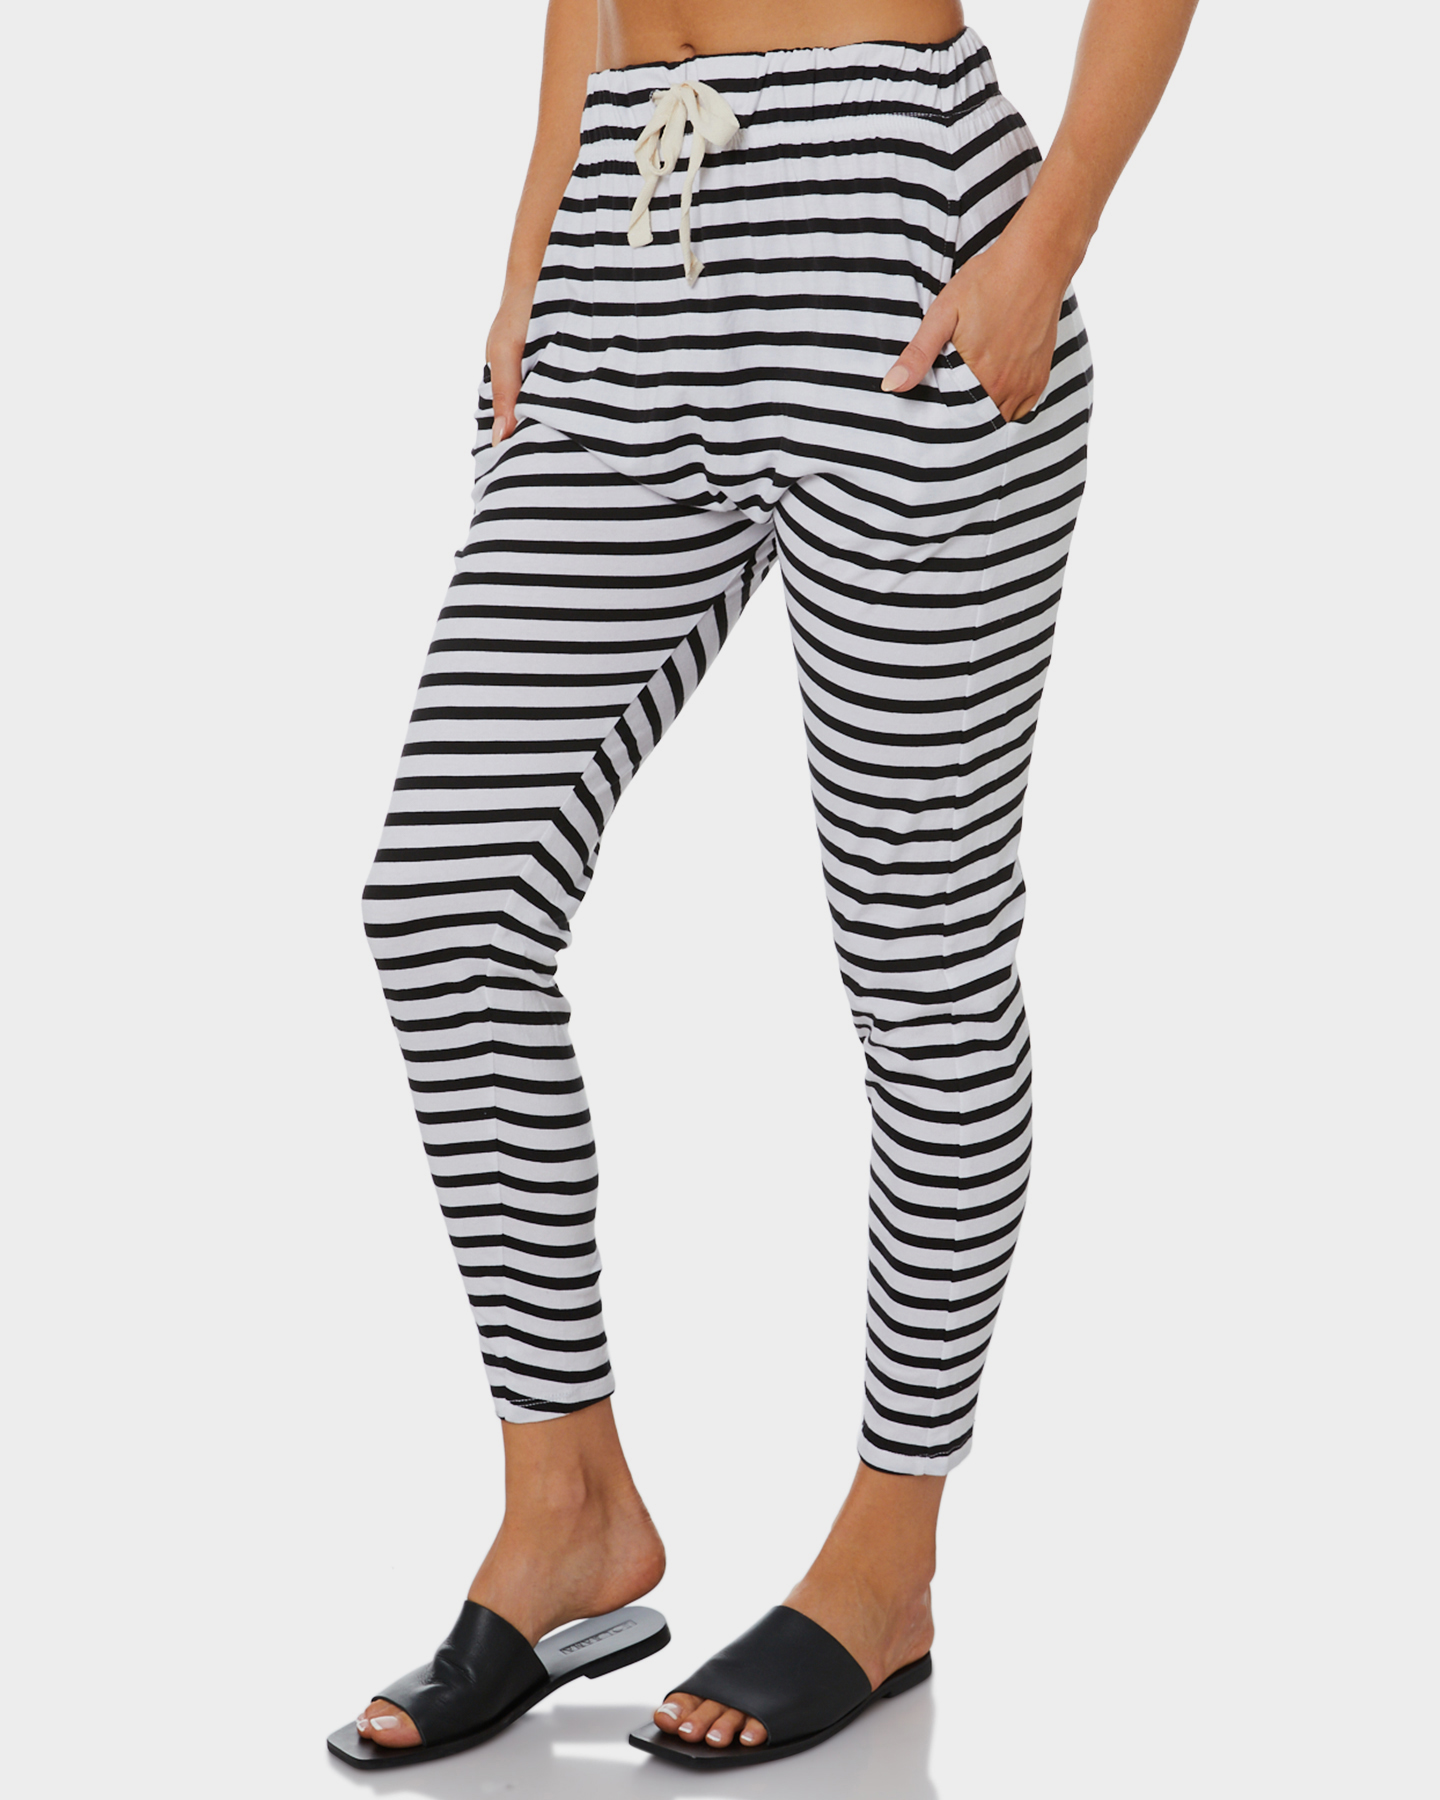 59d2dc030c67f Silent Theory Fluid Womens Pant - Black And White | SurfStitch